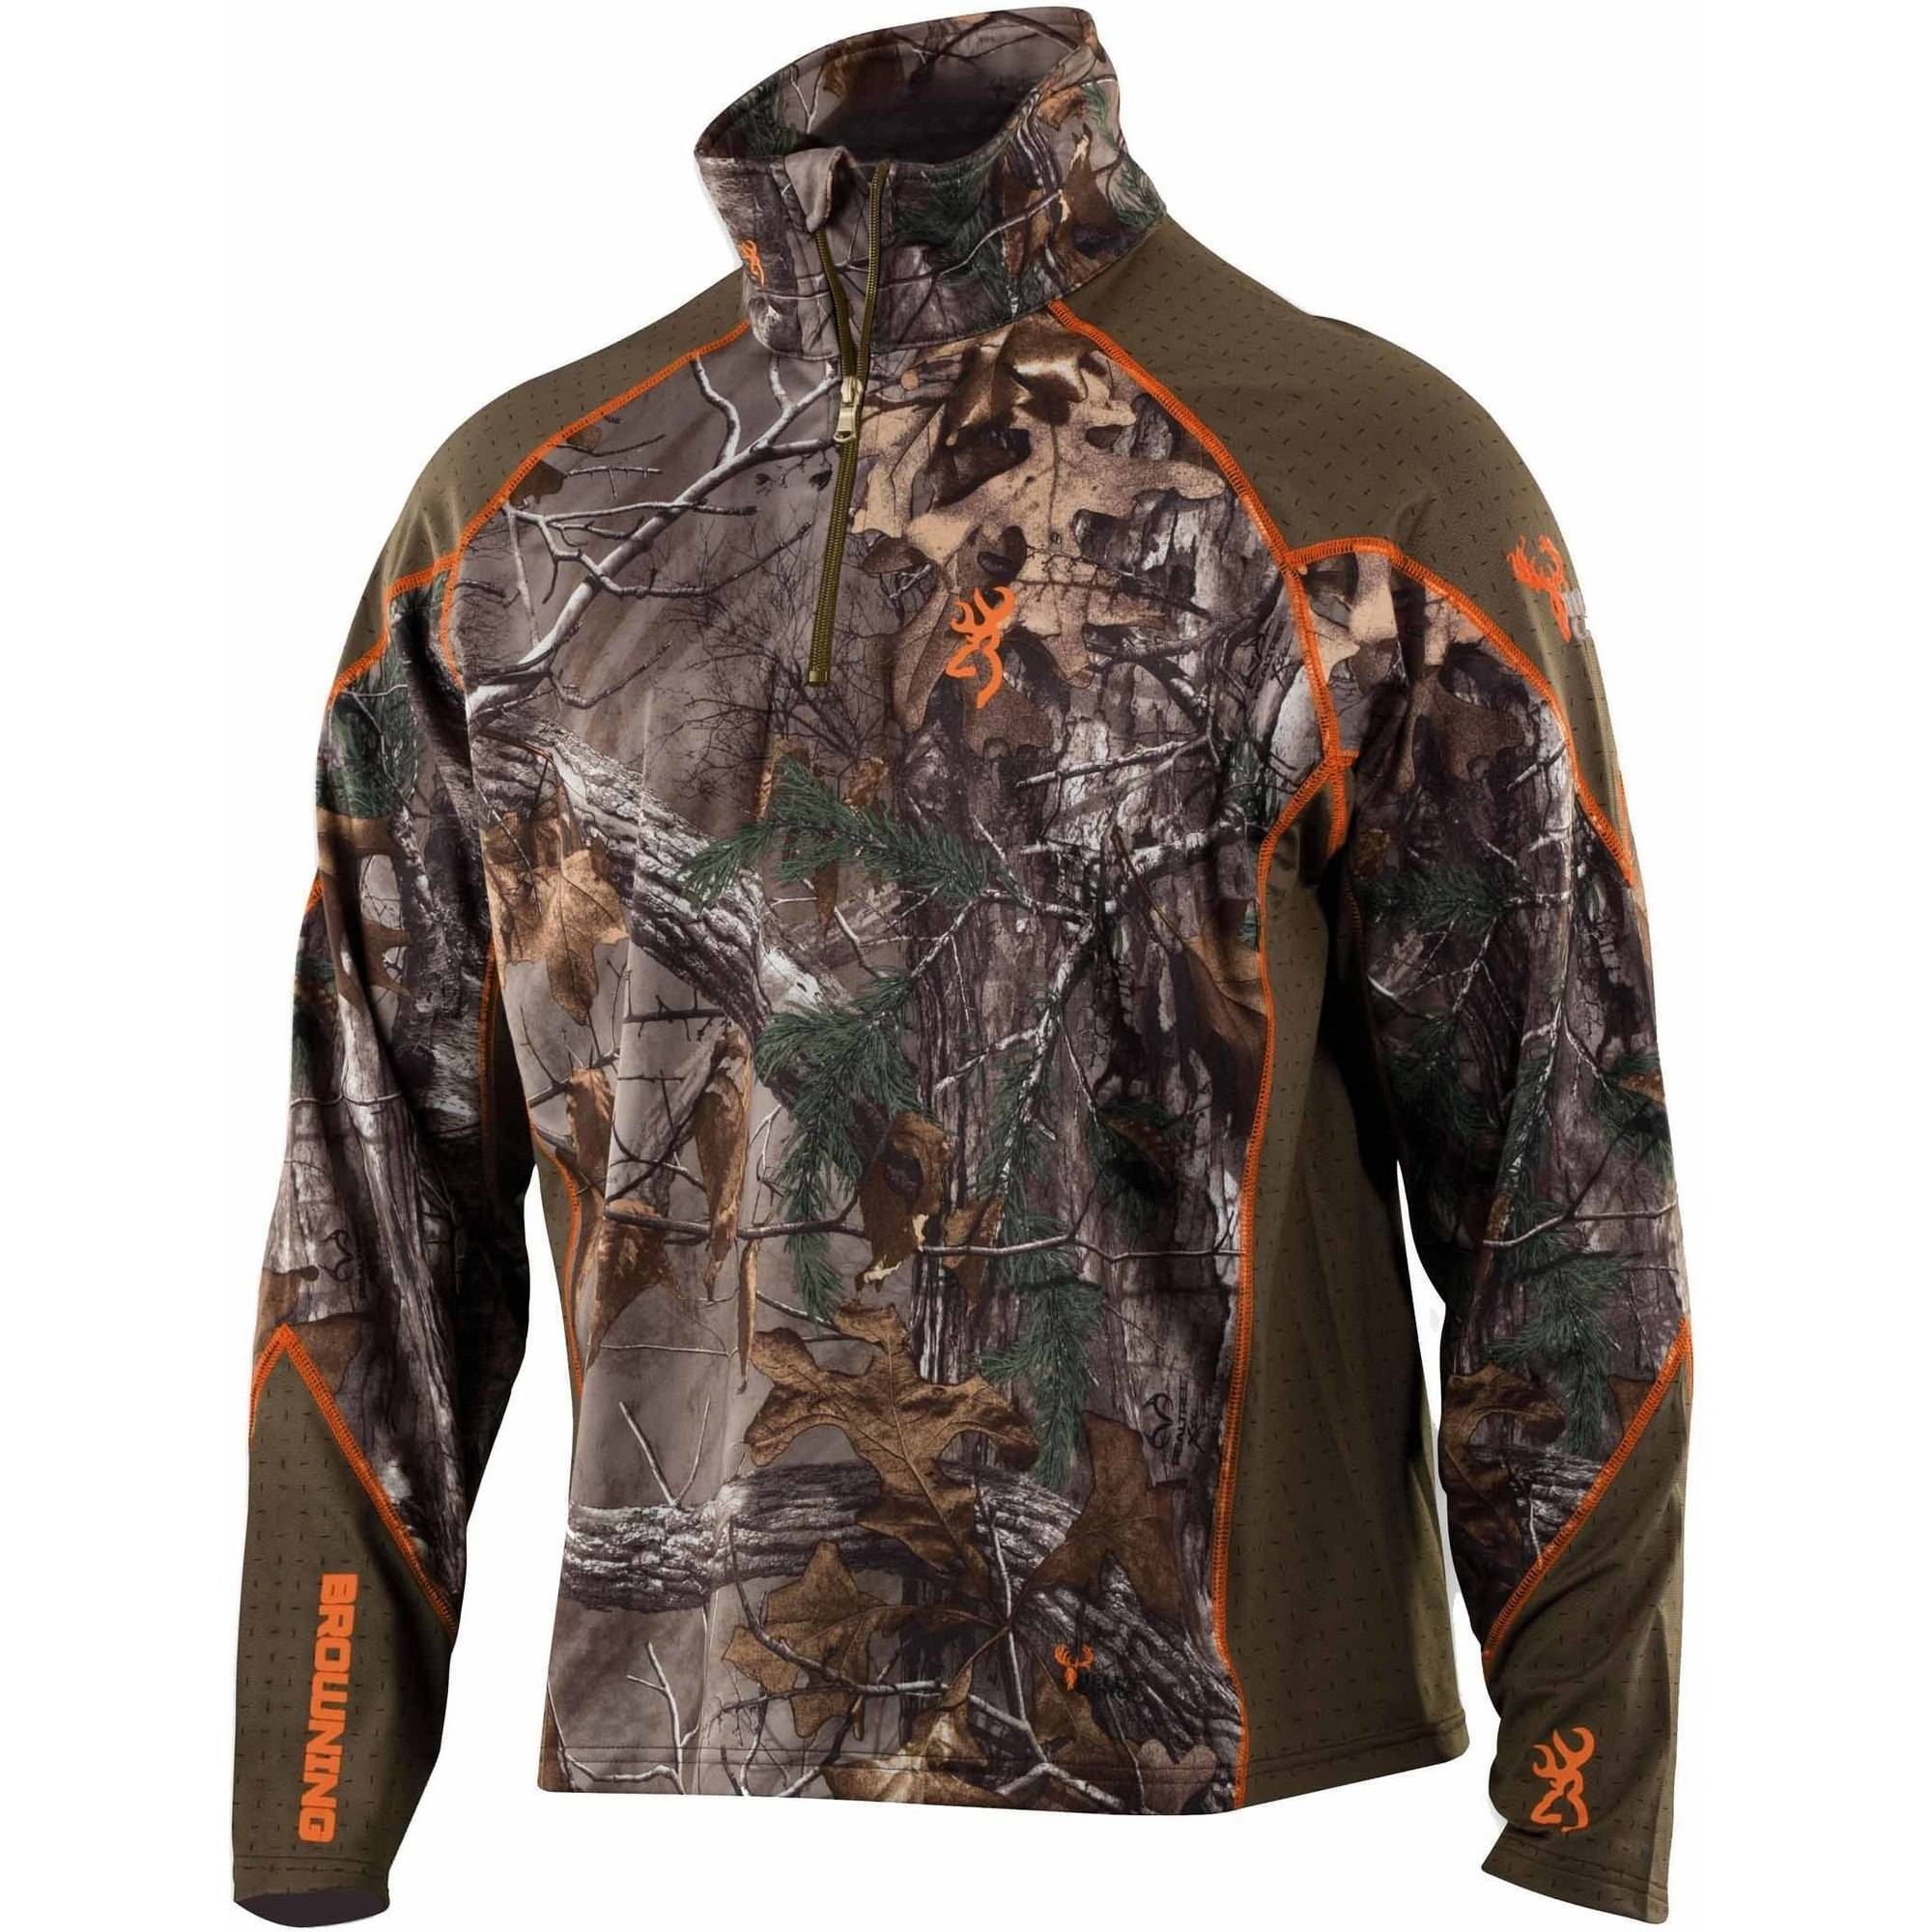 Browning Hell's Canyon Base Layer 1 4 Zip Top by Browning